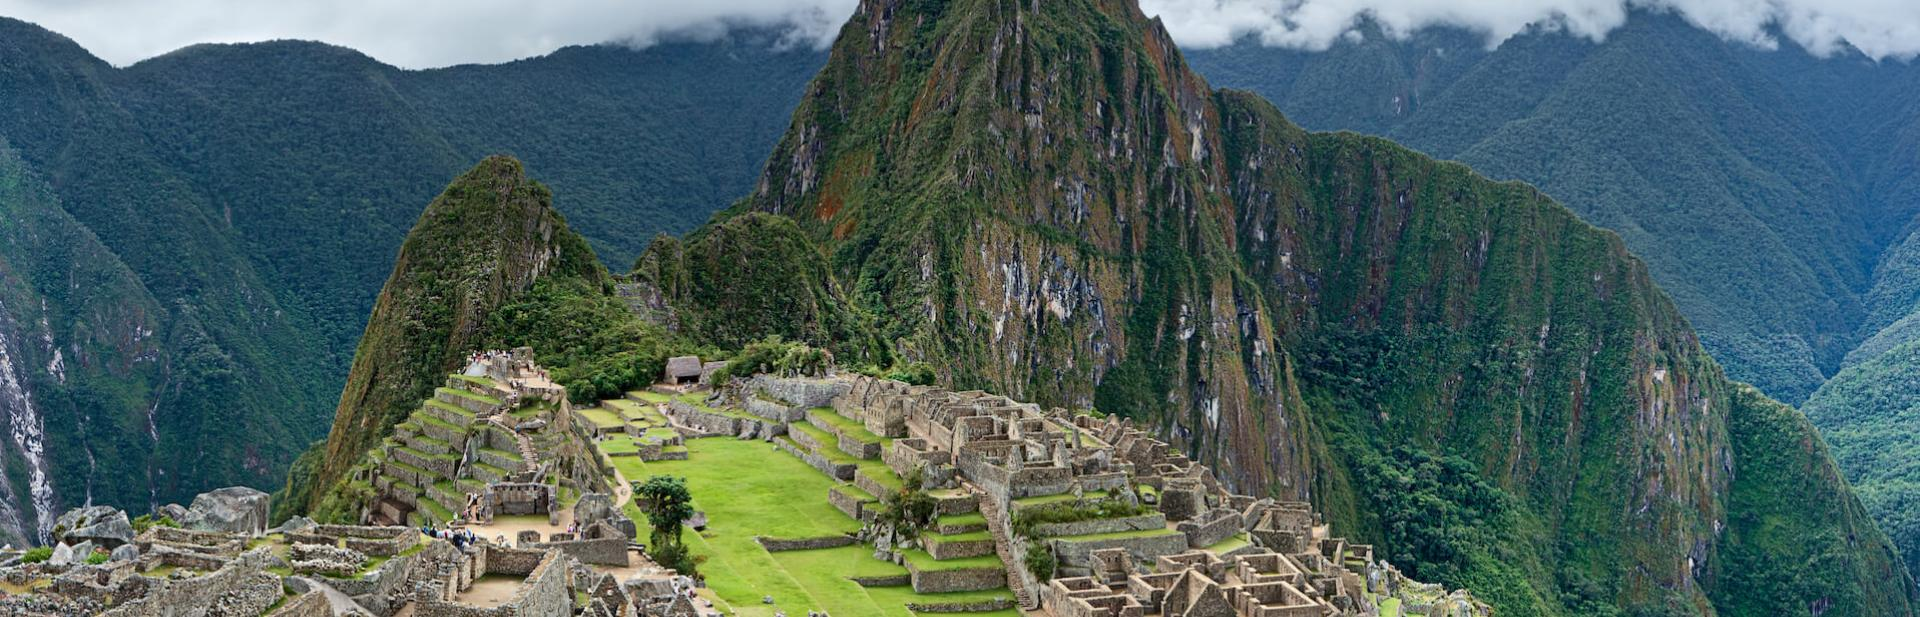 Ruins of Machu Picchu with a mountainous background.